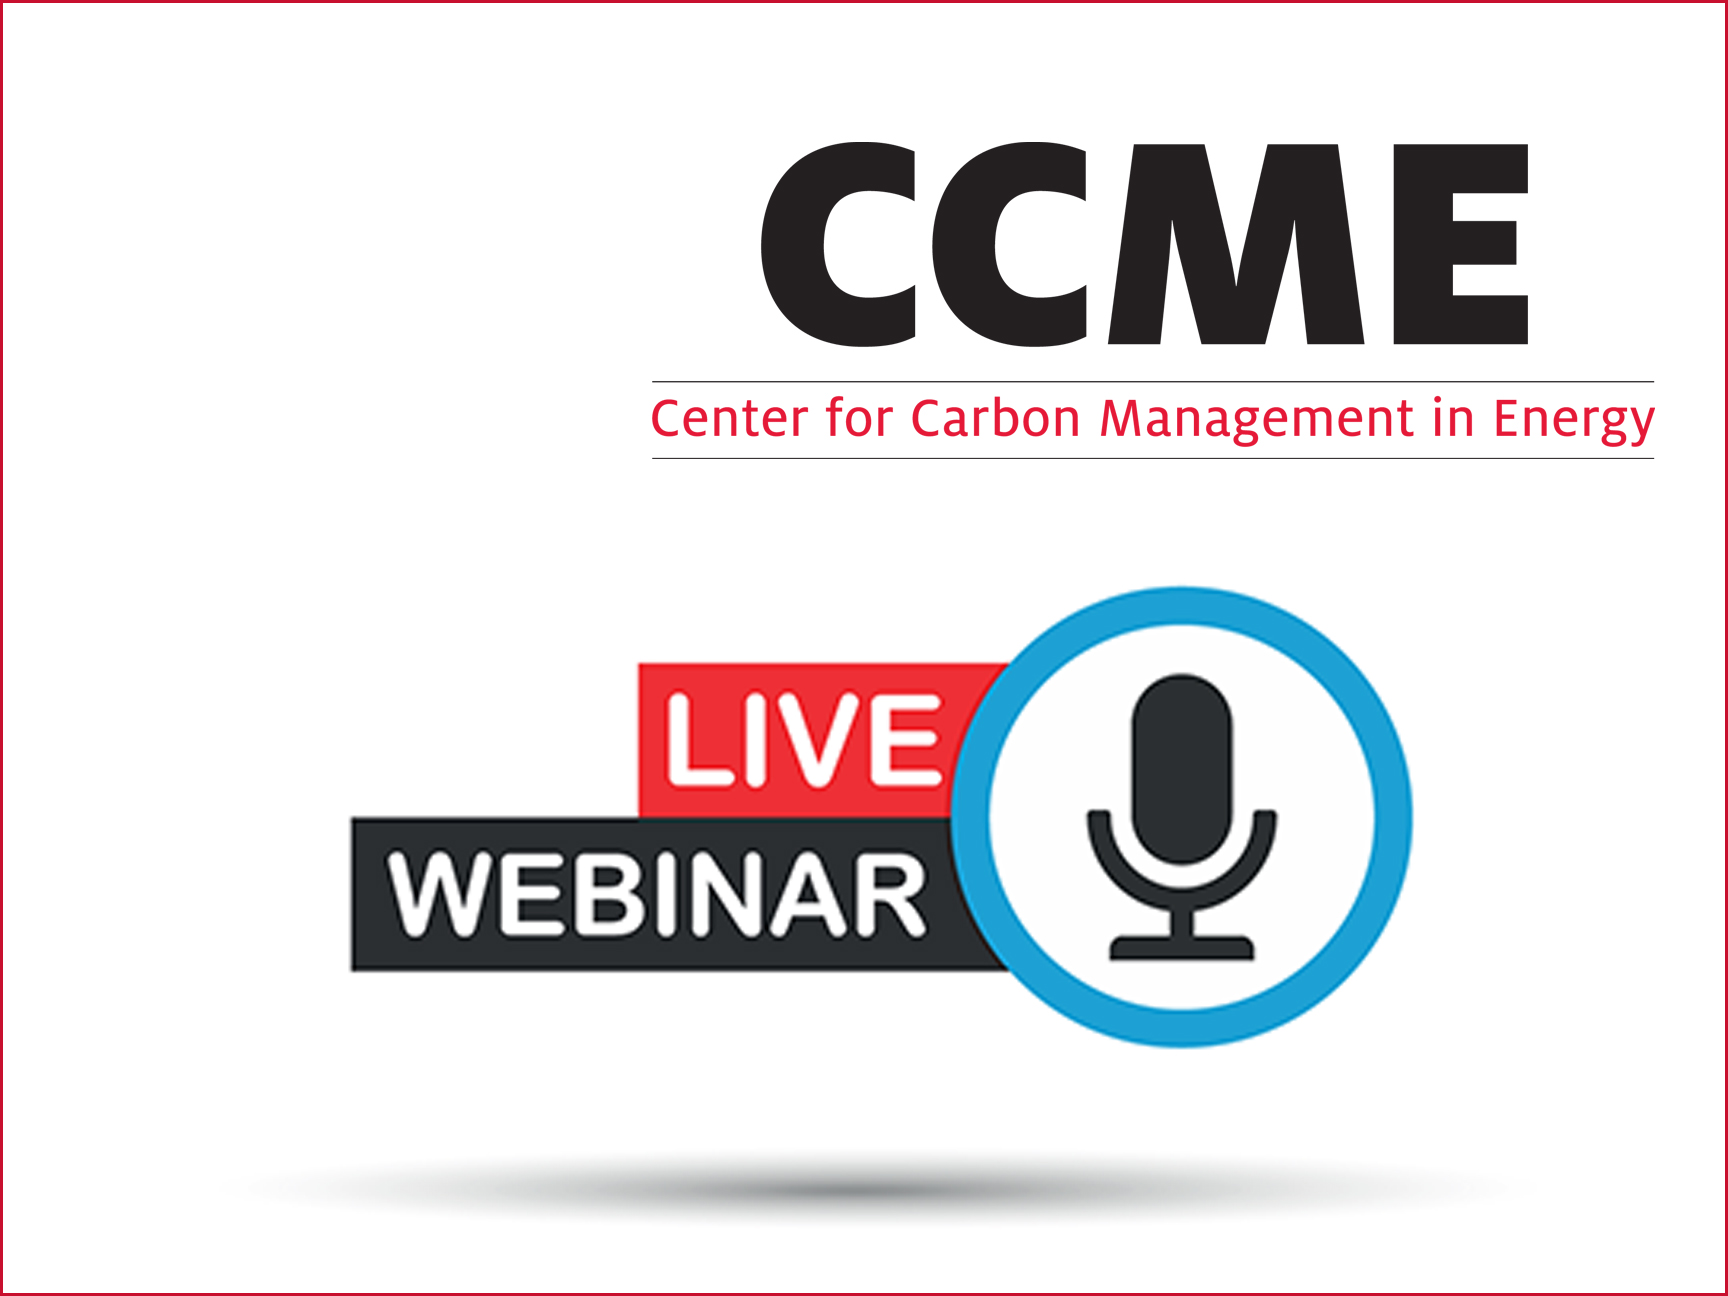 CCME Webinar Series: The Permian – Geologic Value Creation in CO2 Utilization Image